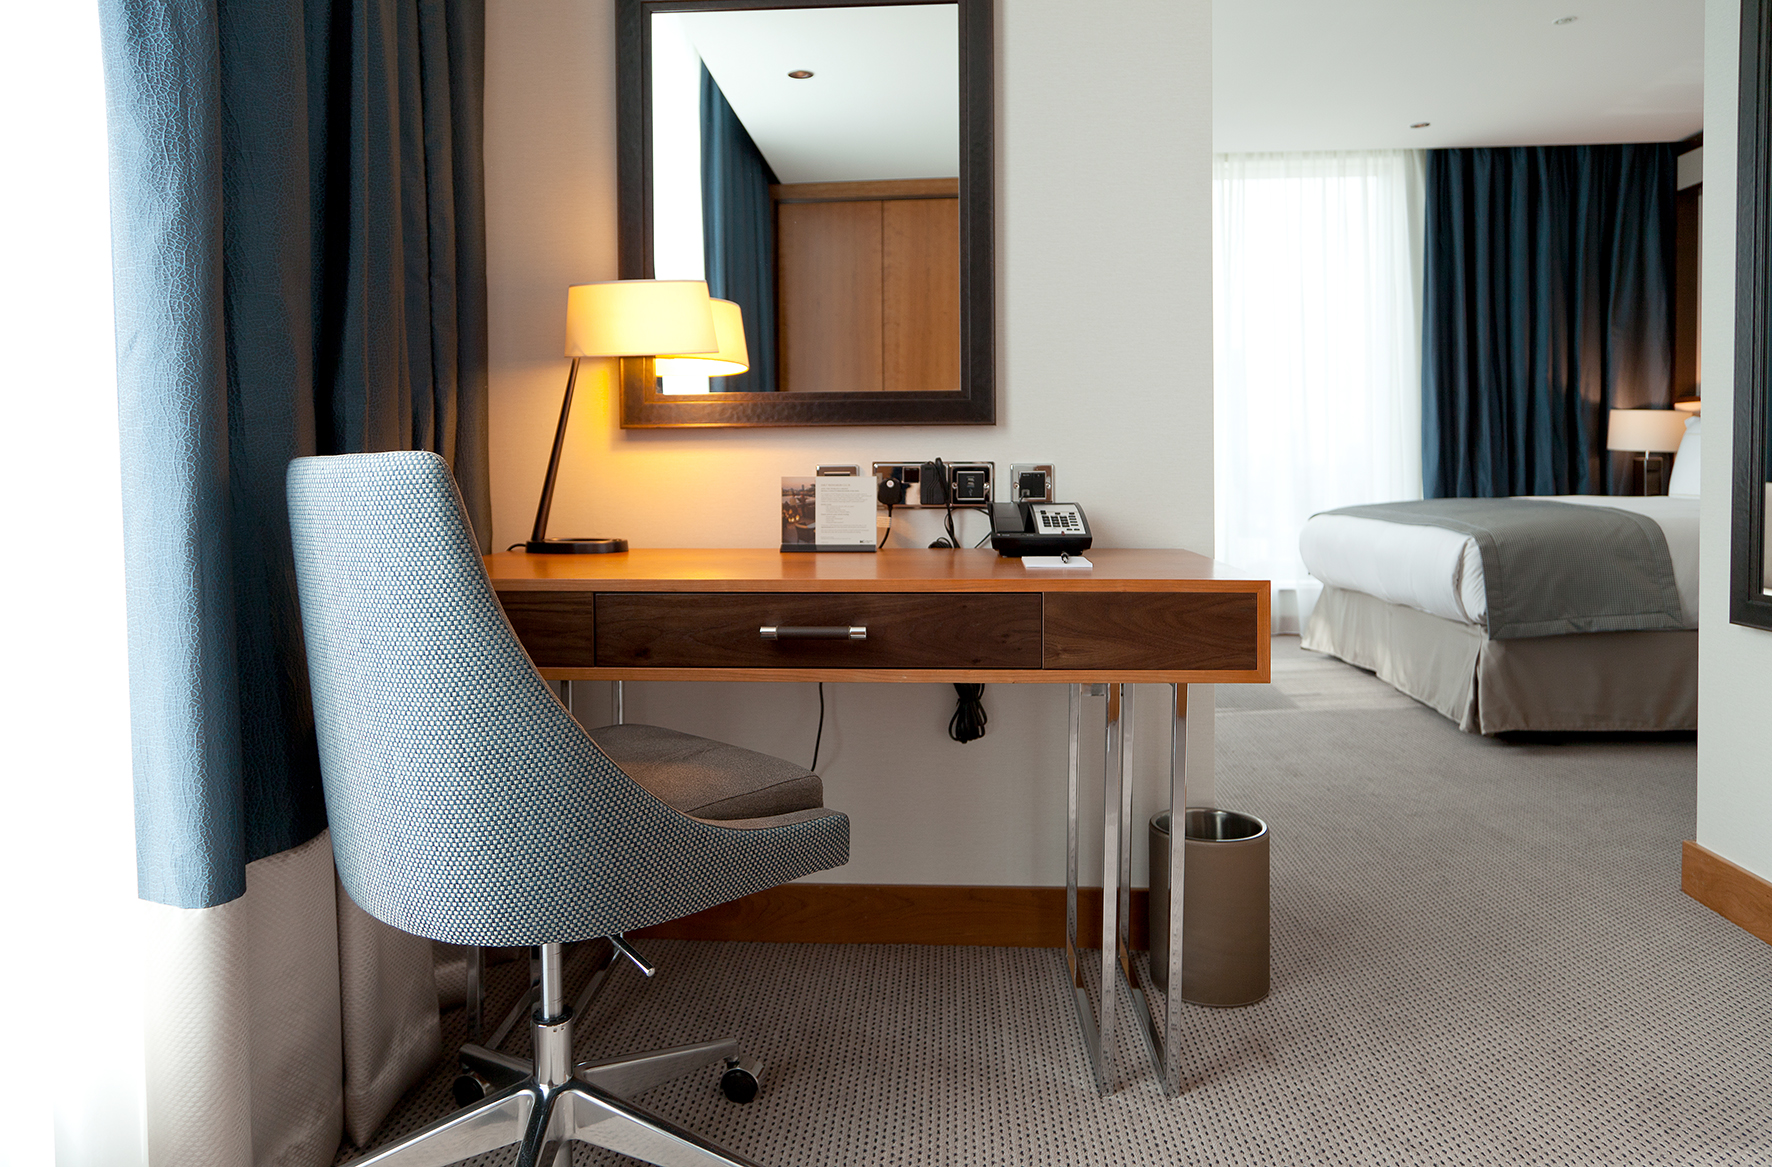 Interior hotel design of an Intercontinental Hotel bedroom at The O2